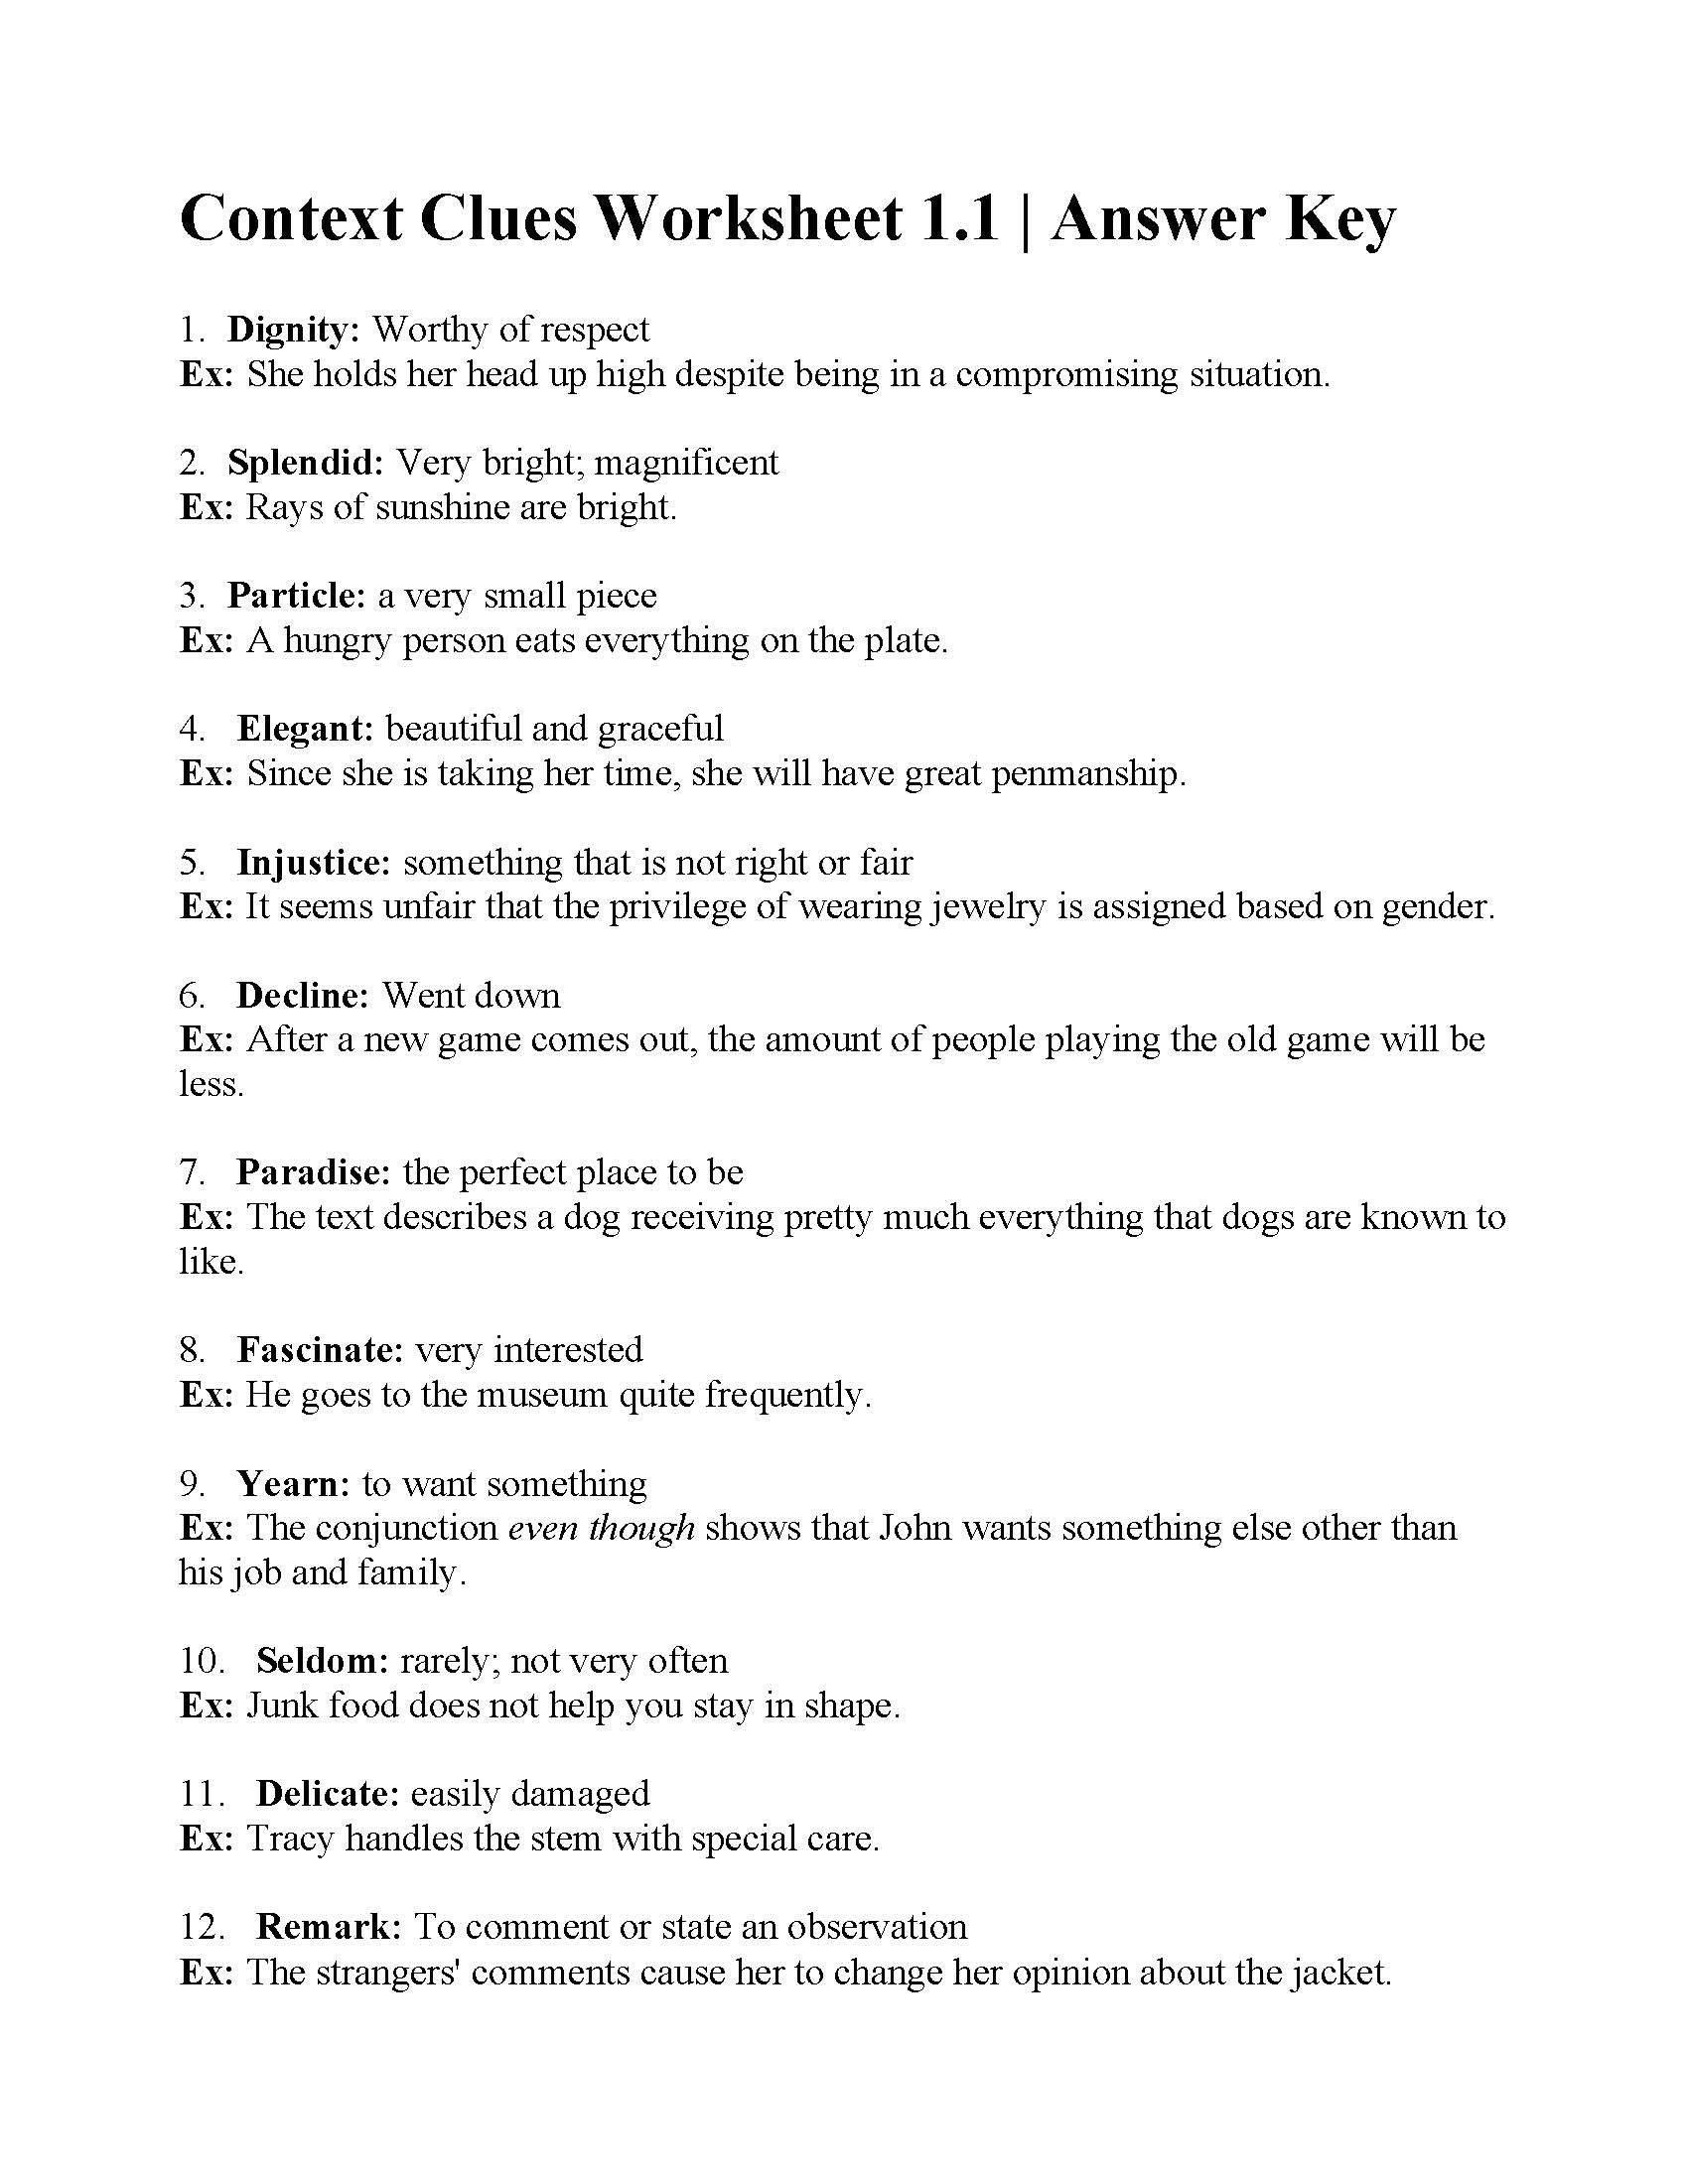 Context Clues Worksheets 2nd Grade 38 Interesting Context Clues Worksheets